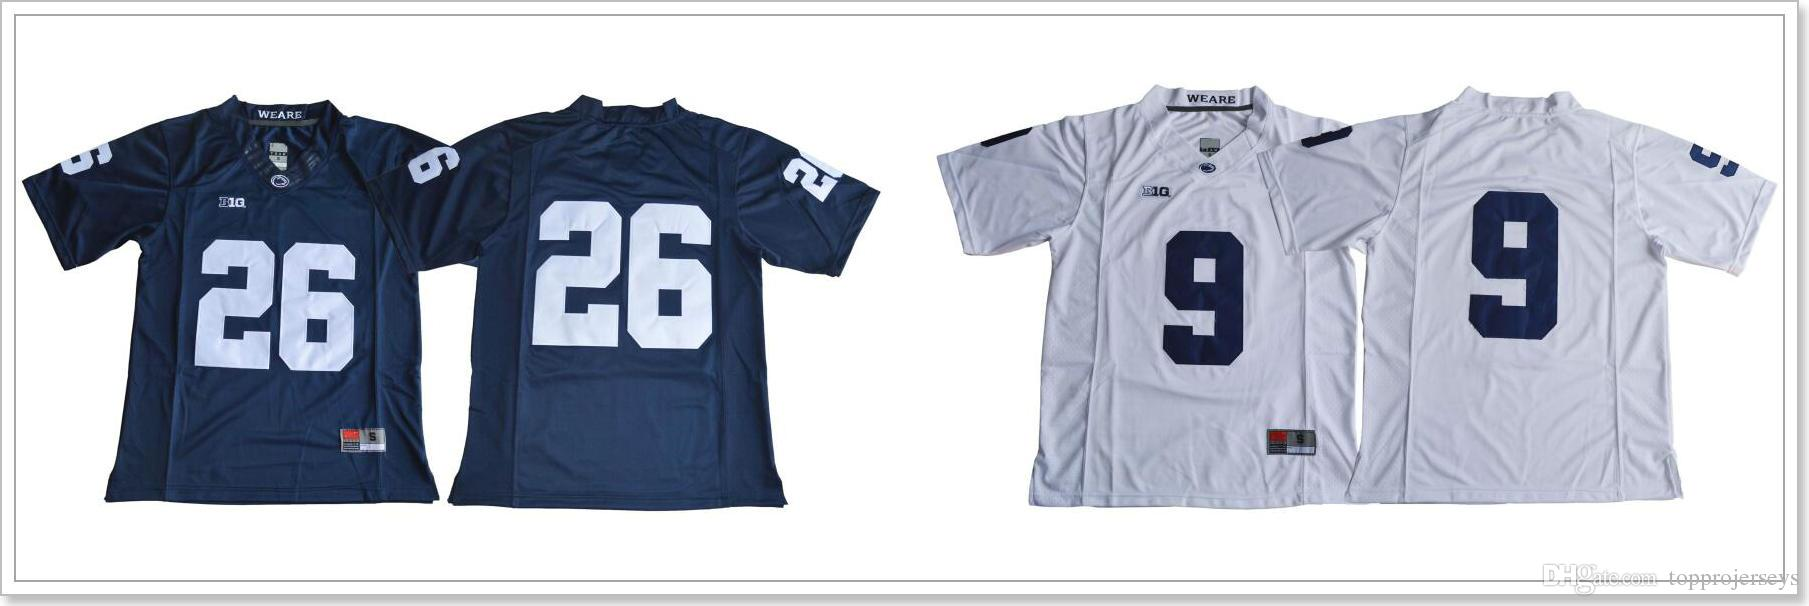 2019 Penn State Nittany Lions  9 Trace McSorley 26 Saquon Barkley Mens  College American Football Stitched Embroidery Sports Team Jerseys Shirts  From ... f16d66e13